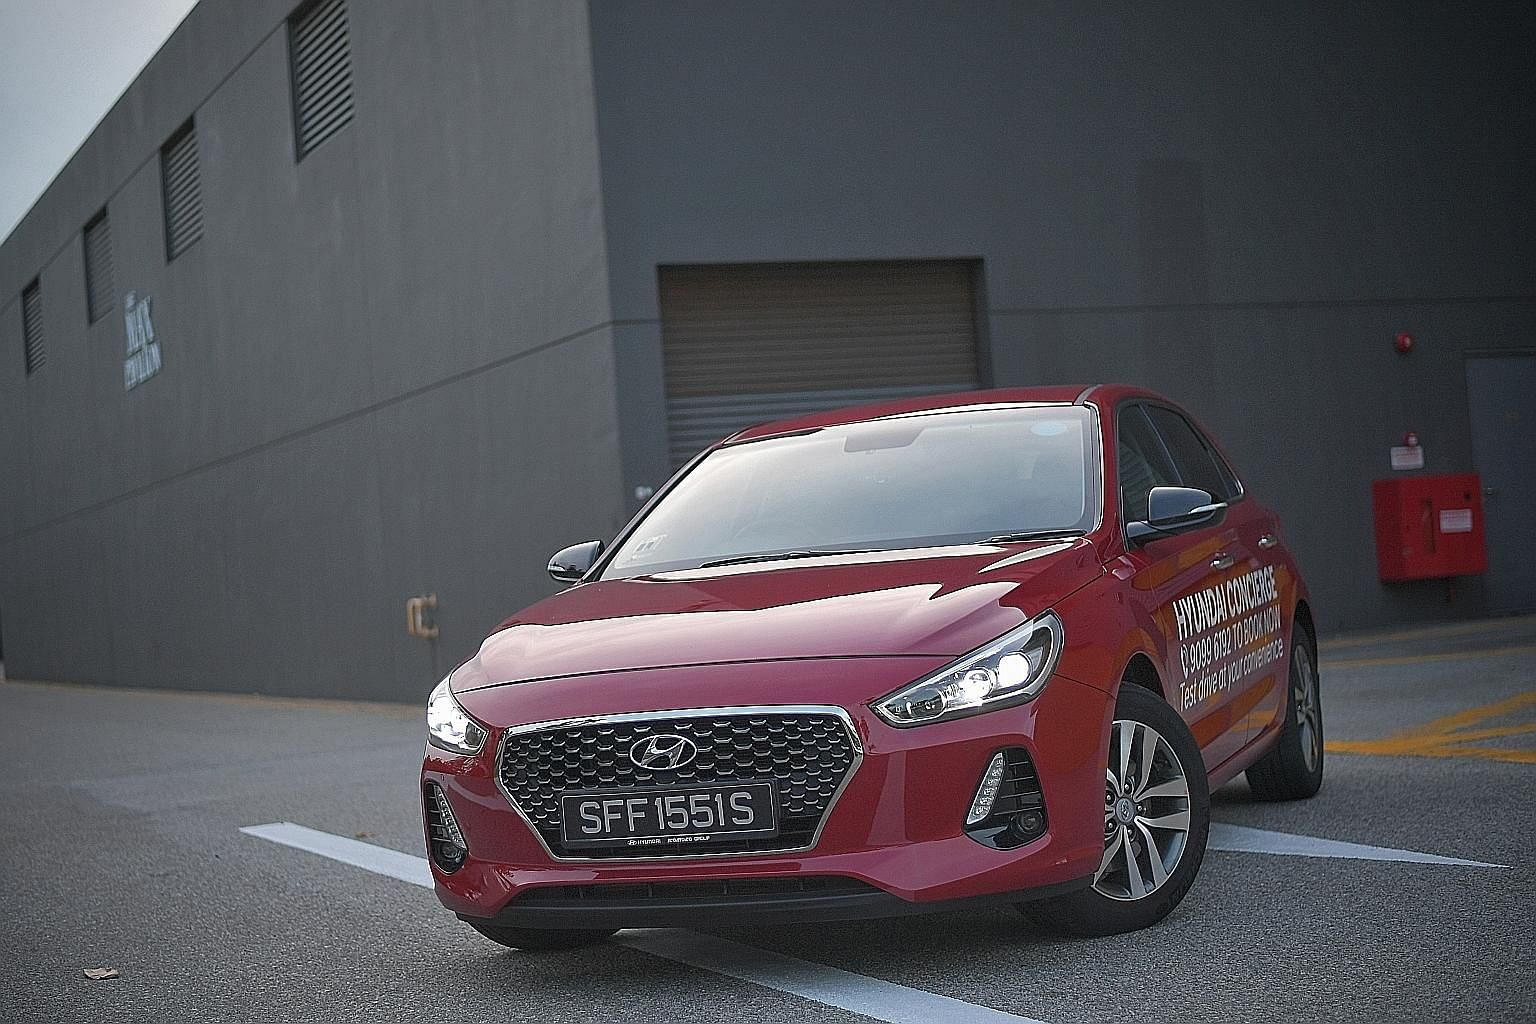 The updated Hyundai i30 hatchback has more frills, including paddle shifters, LED cornering lights, additional airbags and tyres that come with deflation warning.